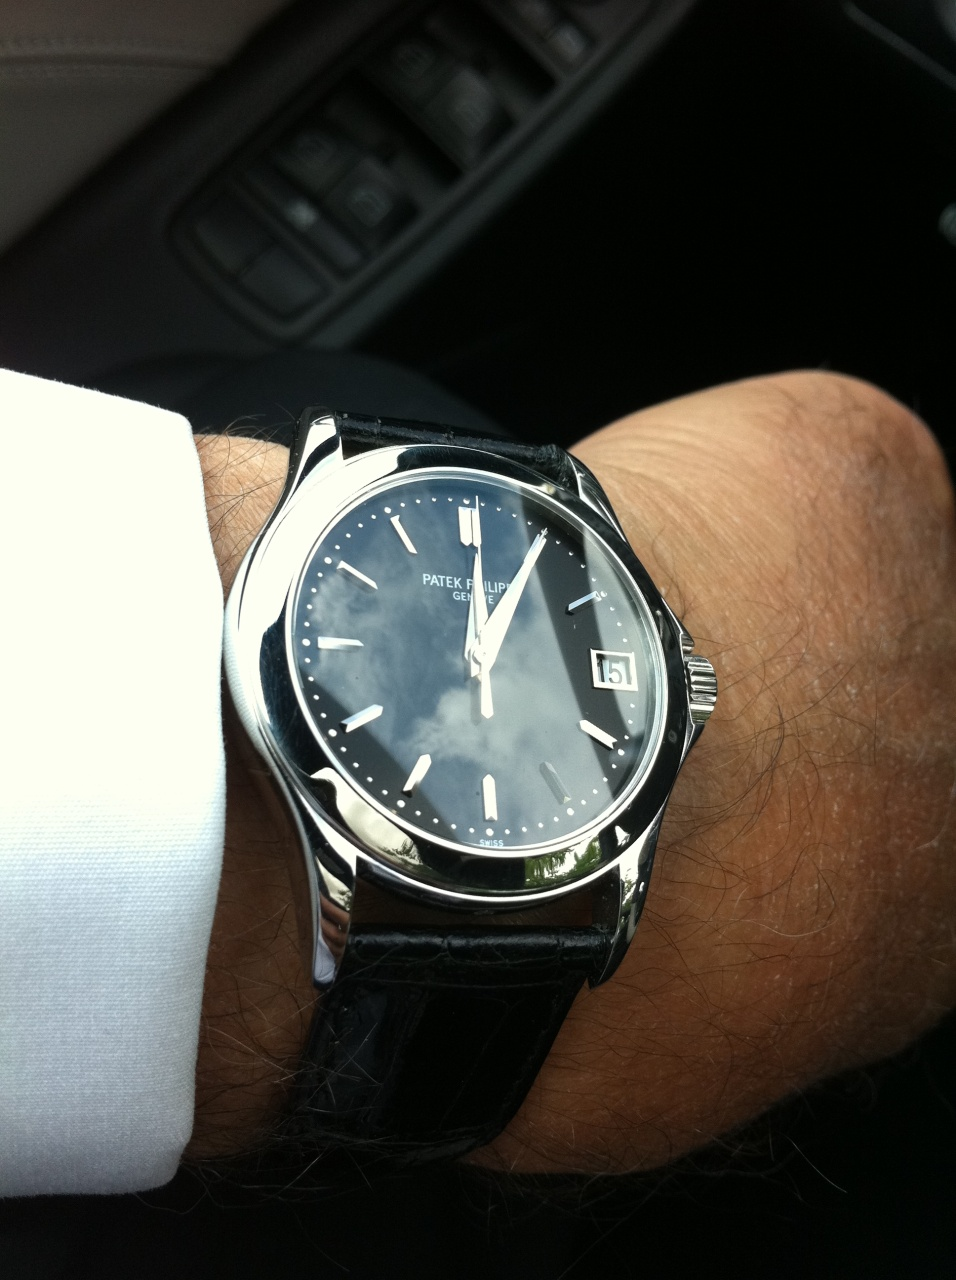 Patek Philippe Calatrava On Wrist